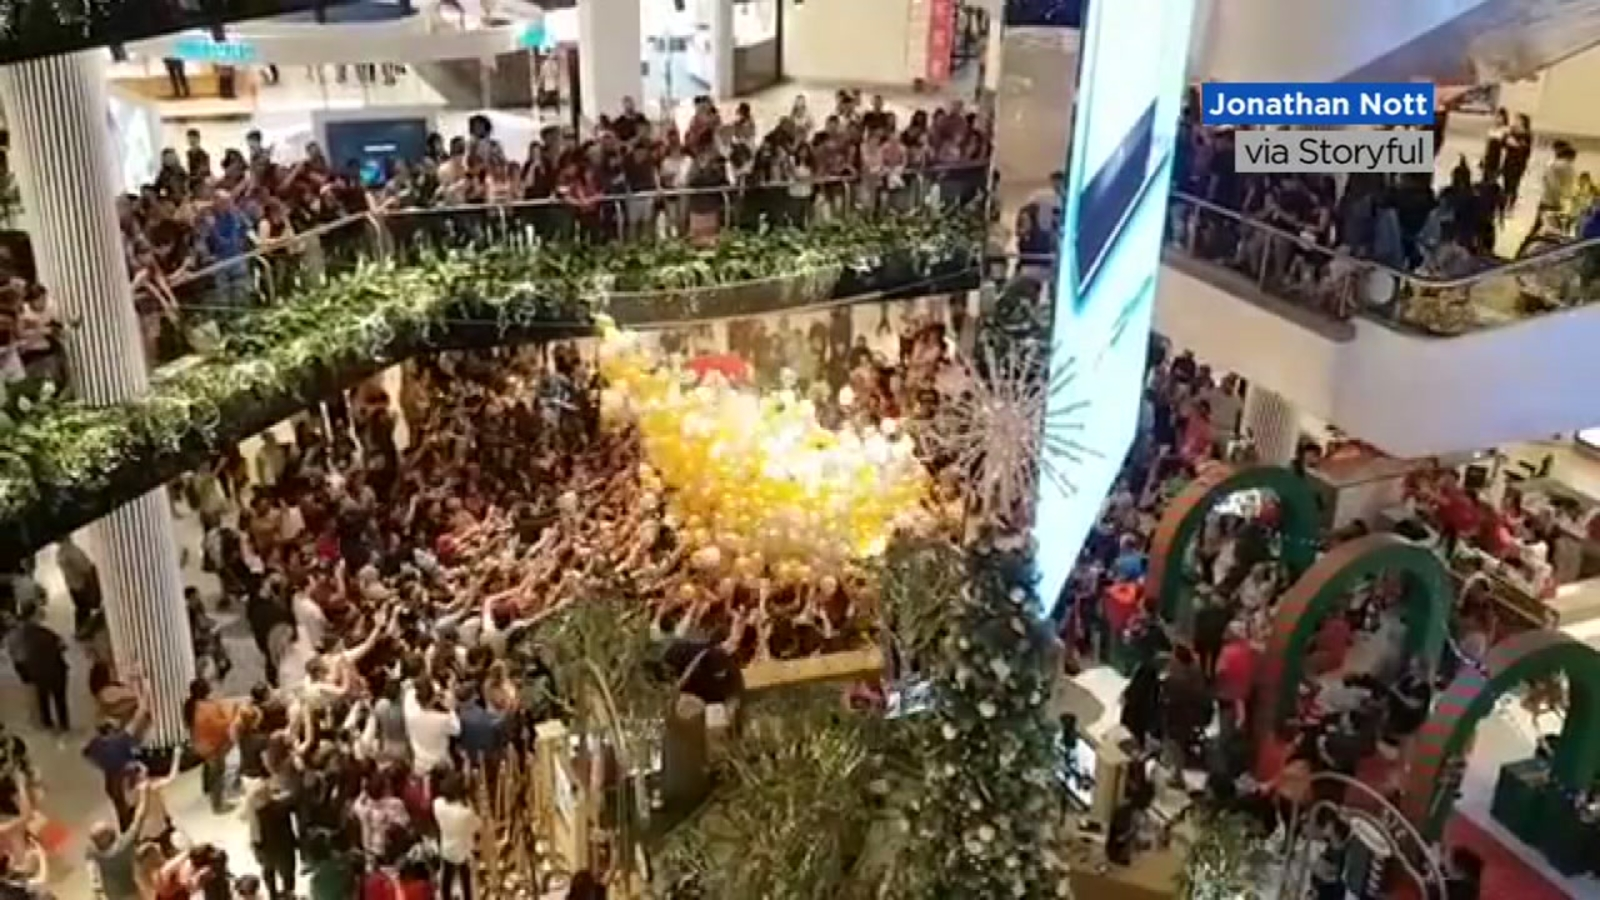 When Christmas Goes Horribly Wrong 2020 VIDEO: Shoppers injured after Christmas balloon drop in Sydney